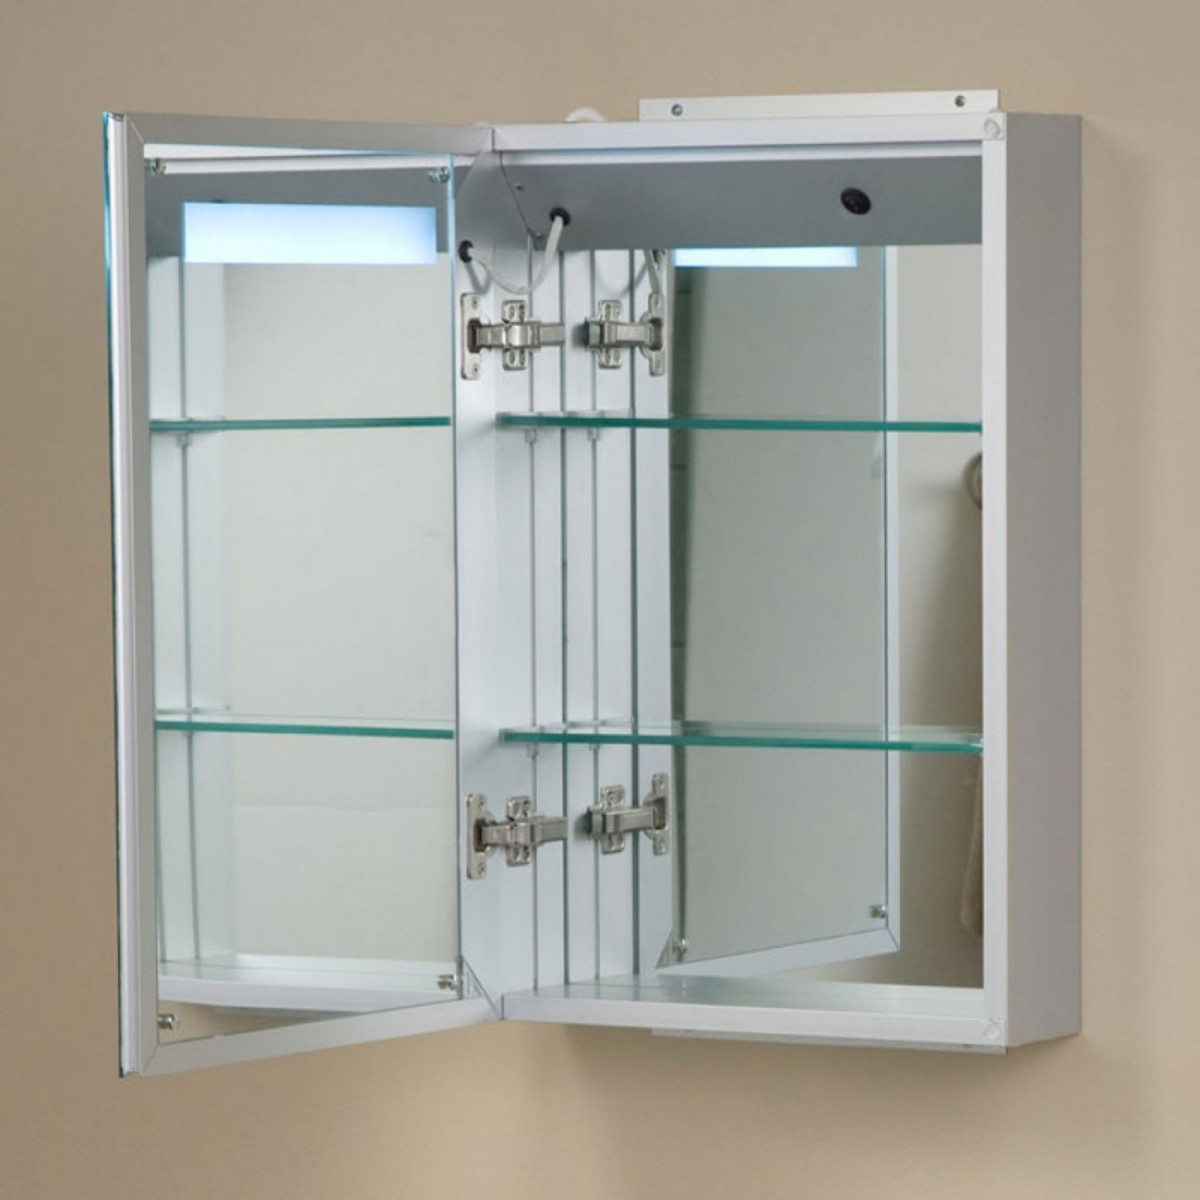 charming Lowes Medicine Cabinets with Mirrors on cream wall